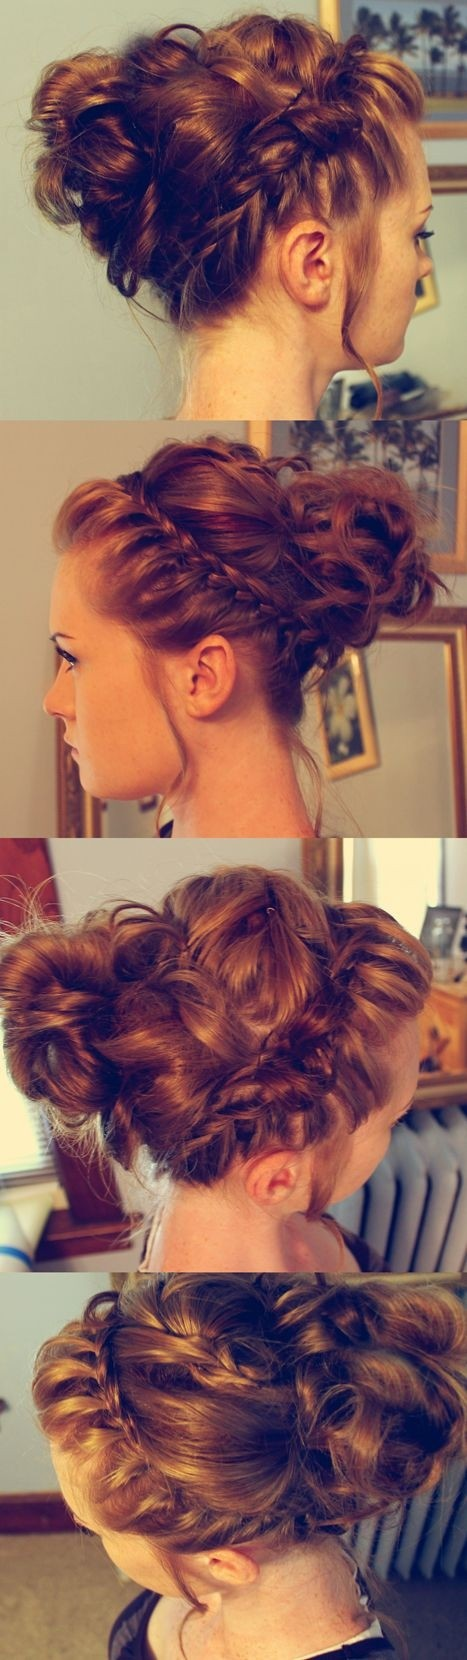 Best Braided Updo Hairstyles: Prom Hairstyles Ideas 2014- 2015